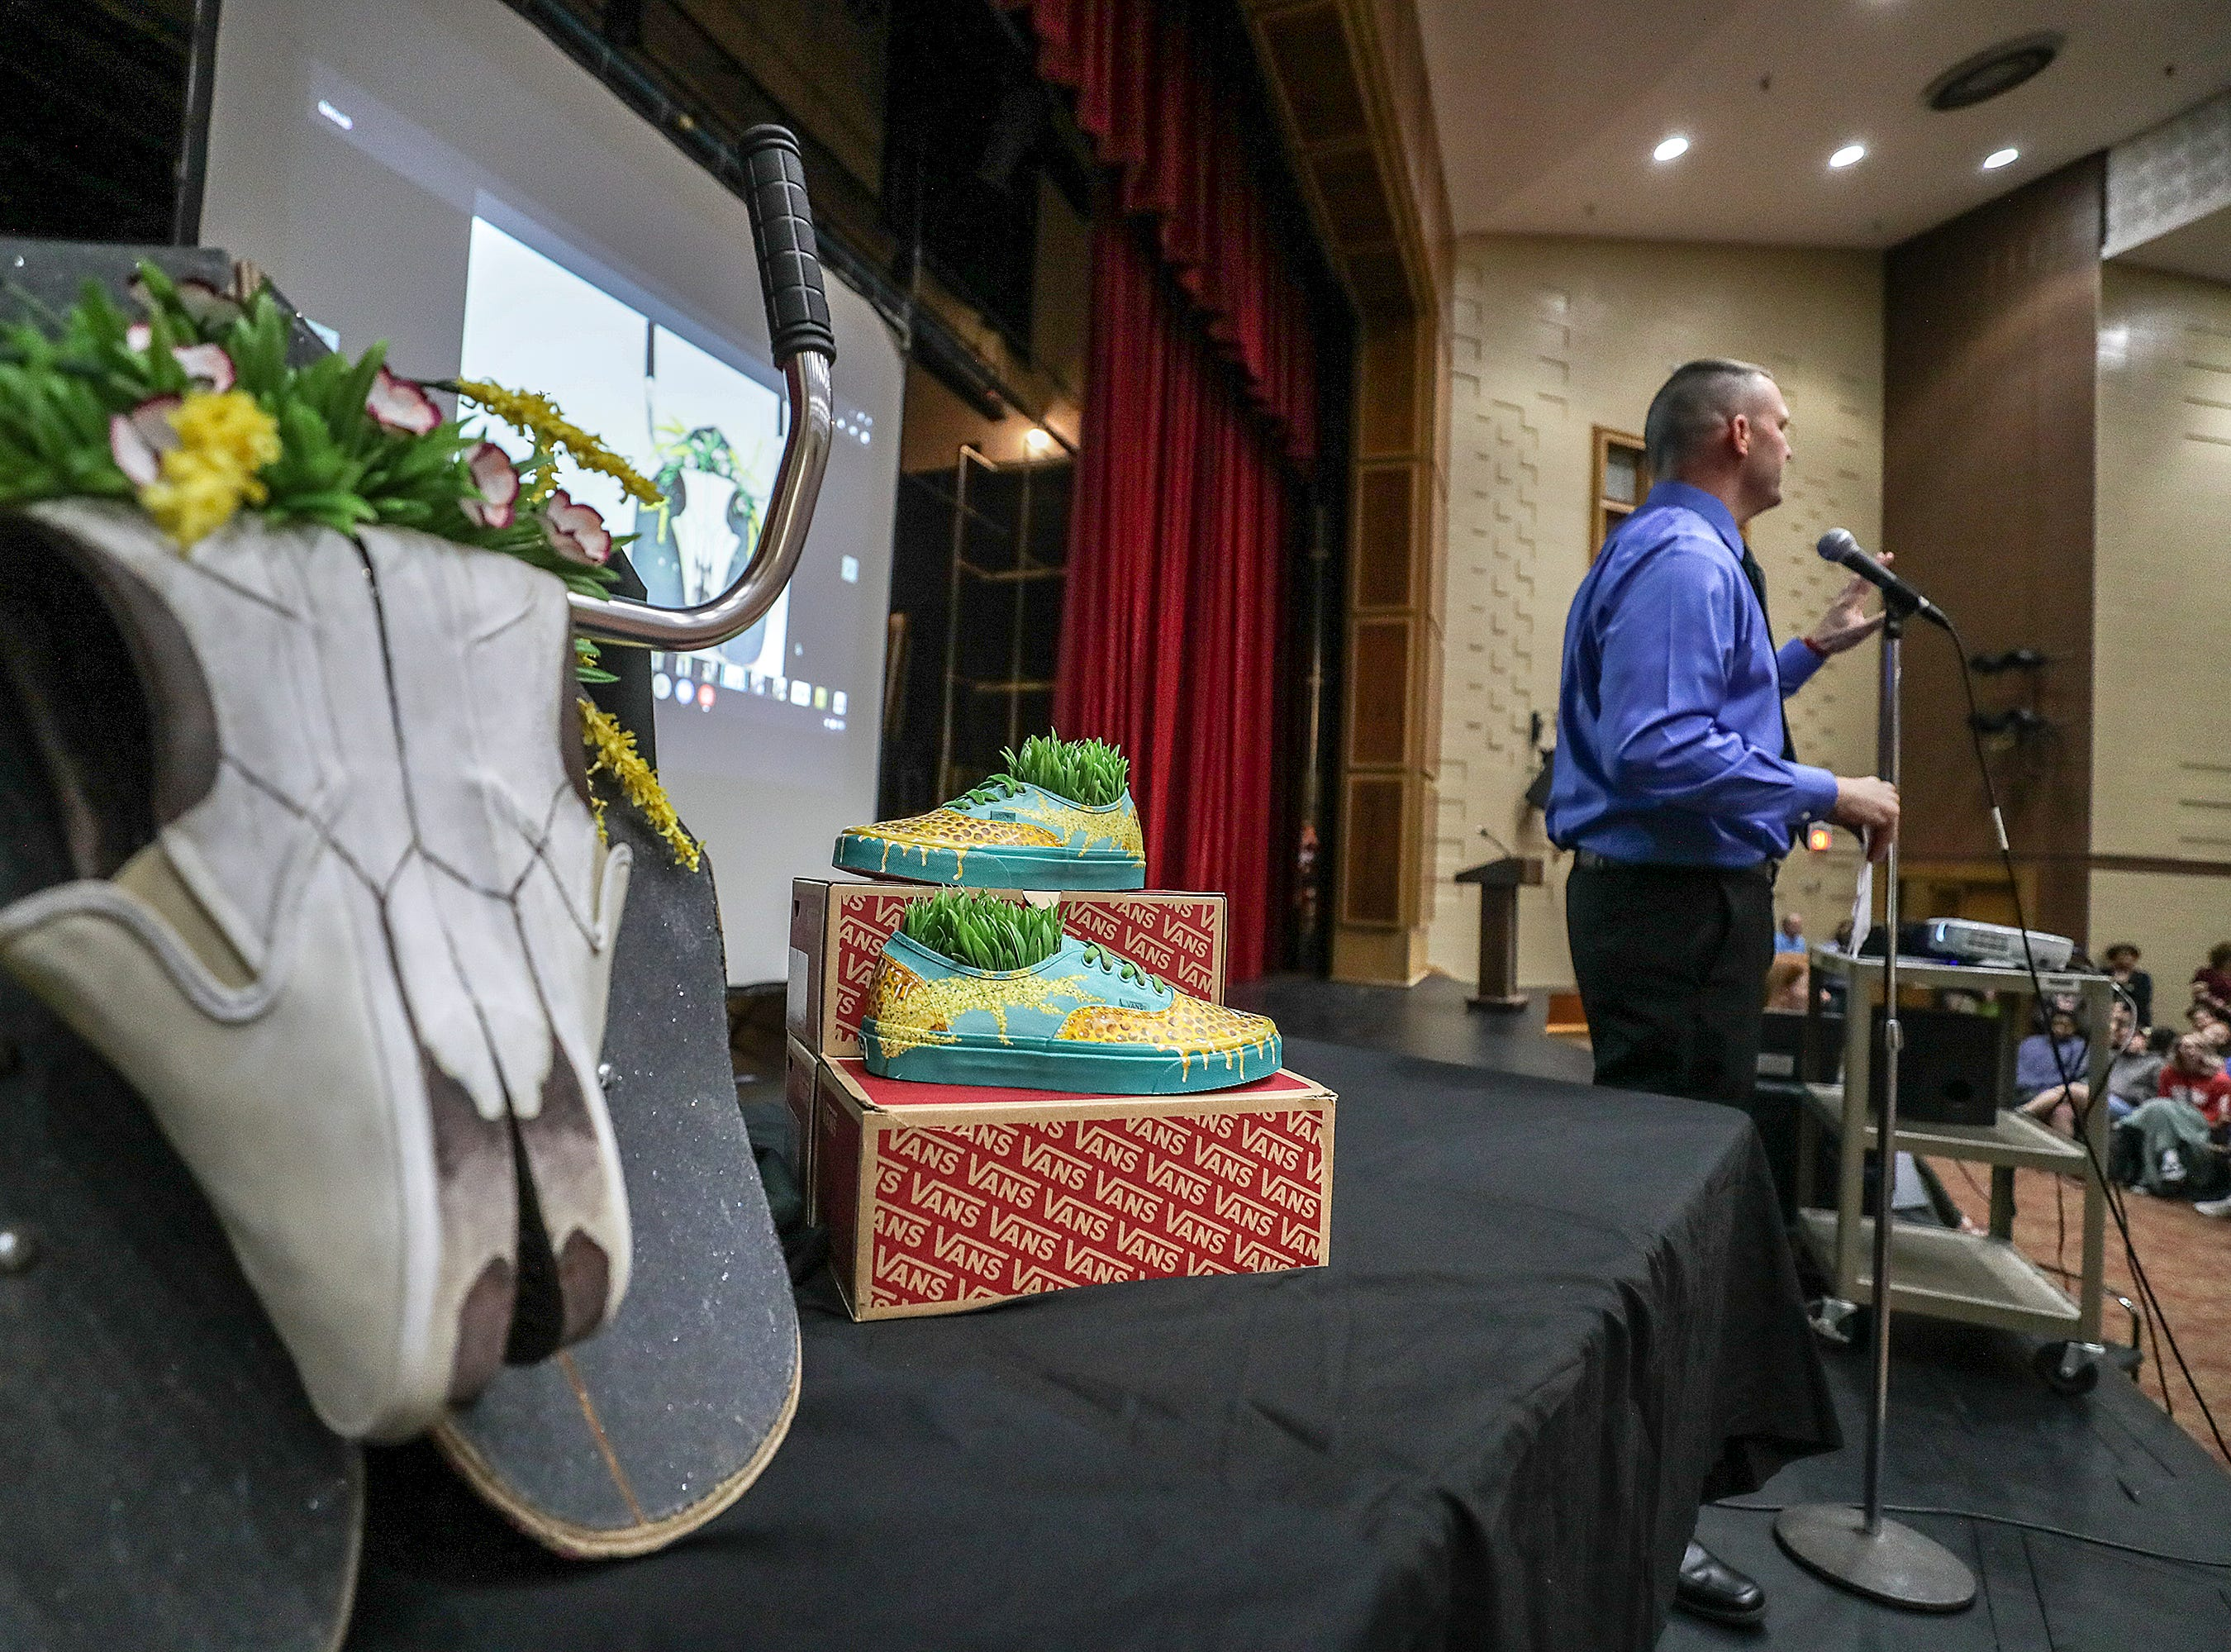 Atherton principal Tom Aberli kicks off a school assembly on Tuesday morning to learn whether the school had won the grand prize from Vans as part of their Custom Culture contest where students used the distinctive footwear to design shoes that depict their state.  Atherton was one of the runner ups and received $10,000 from Vans.May 14, 2019